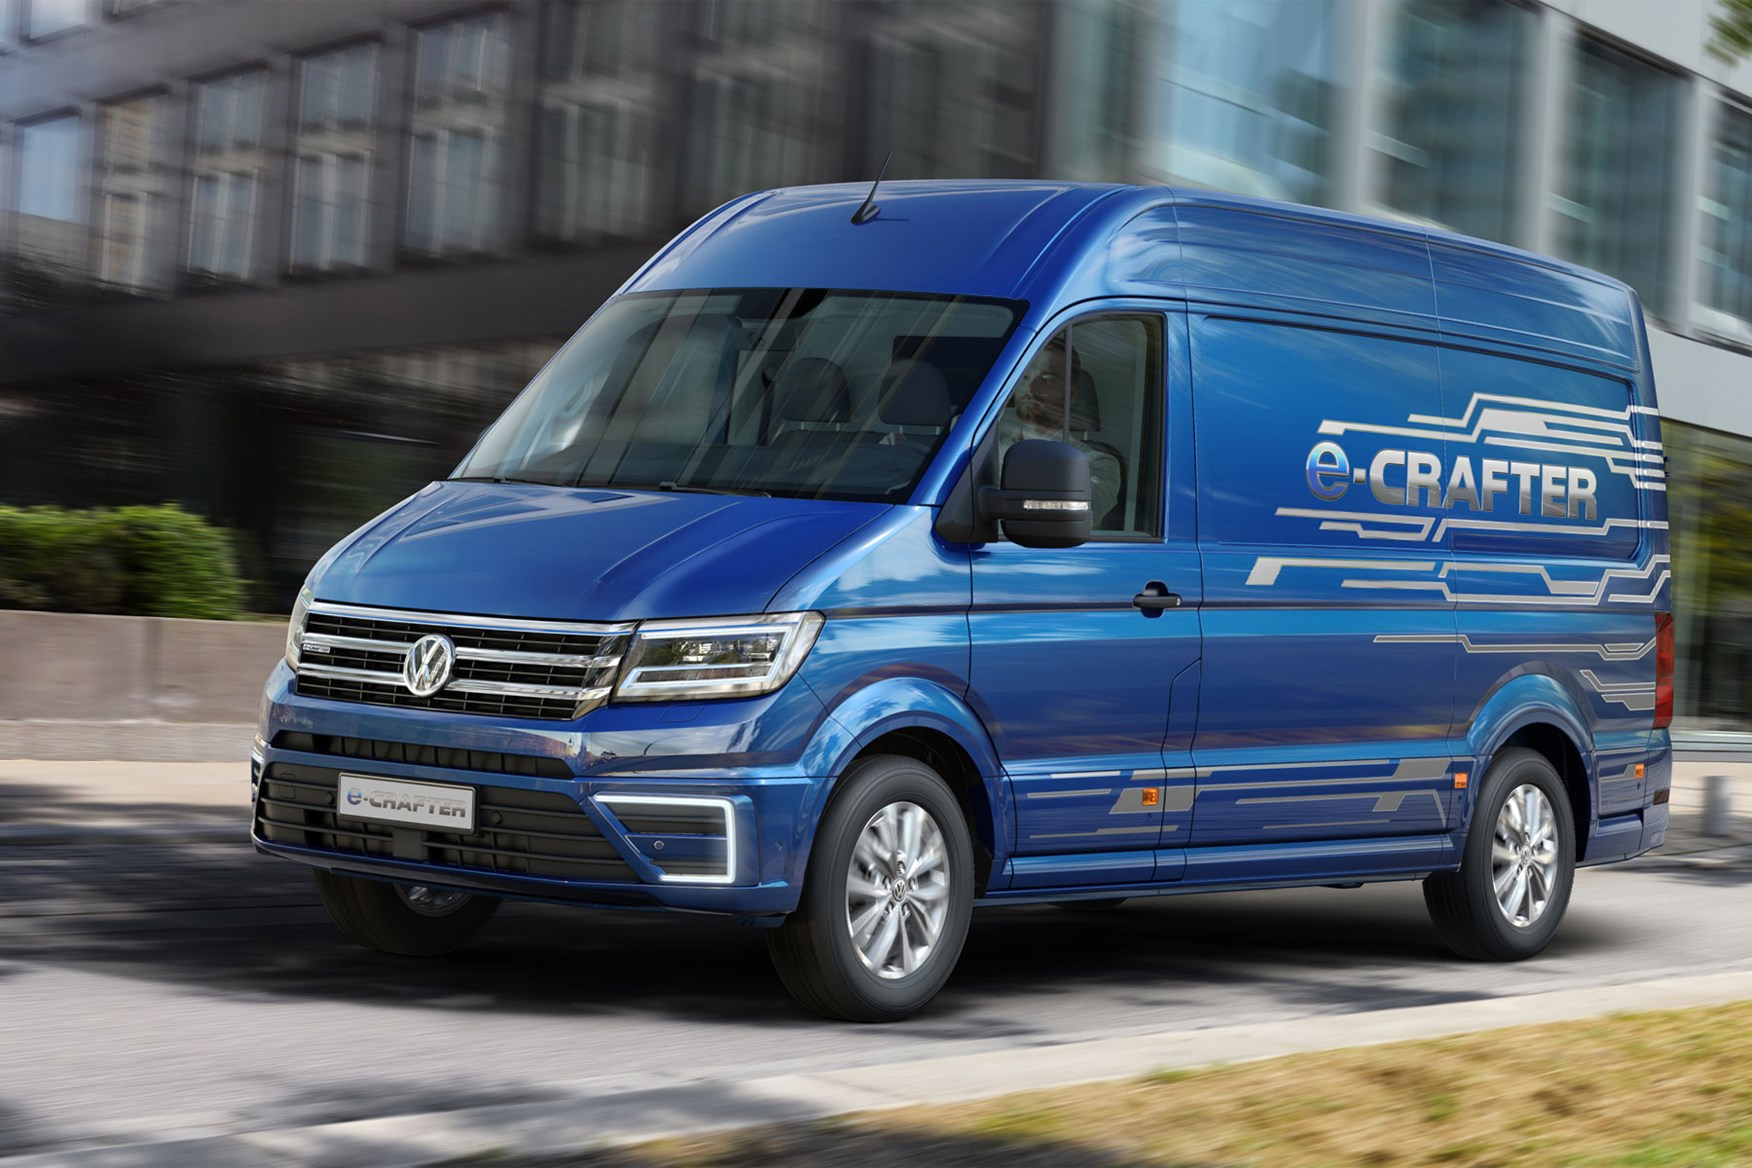 VW e-Crafter electric van - on sale in the UK in 2021